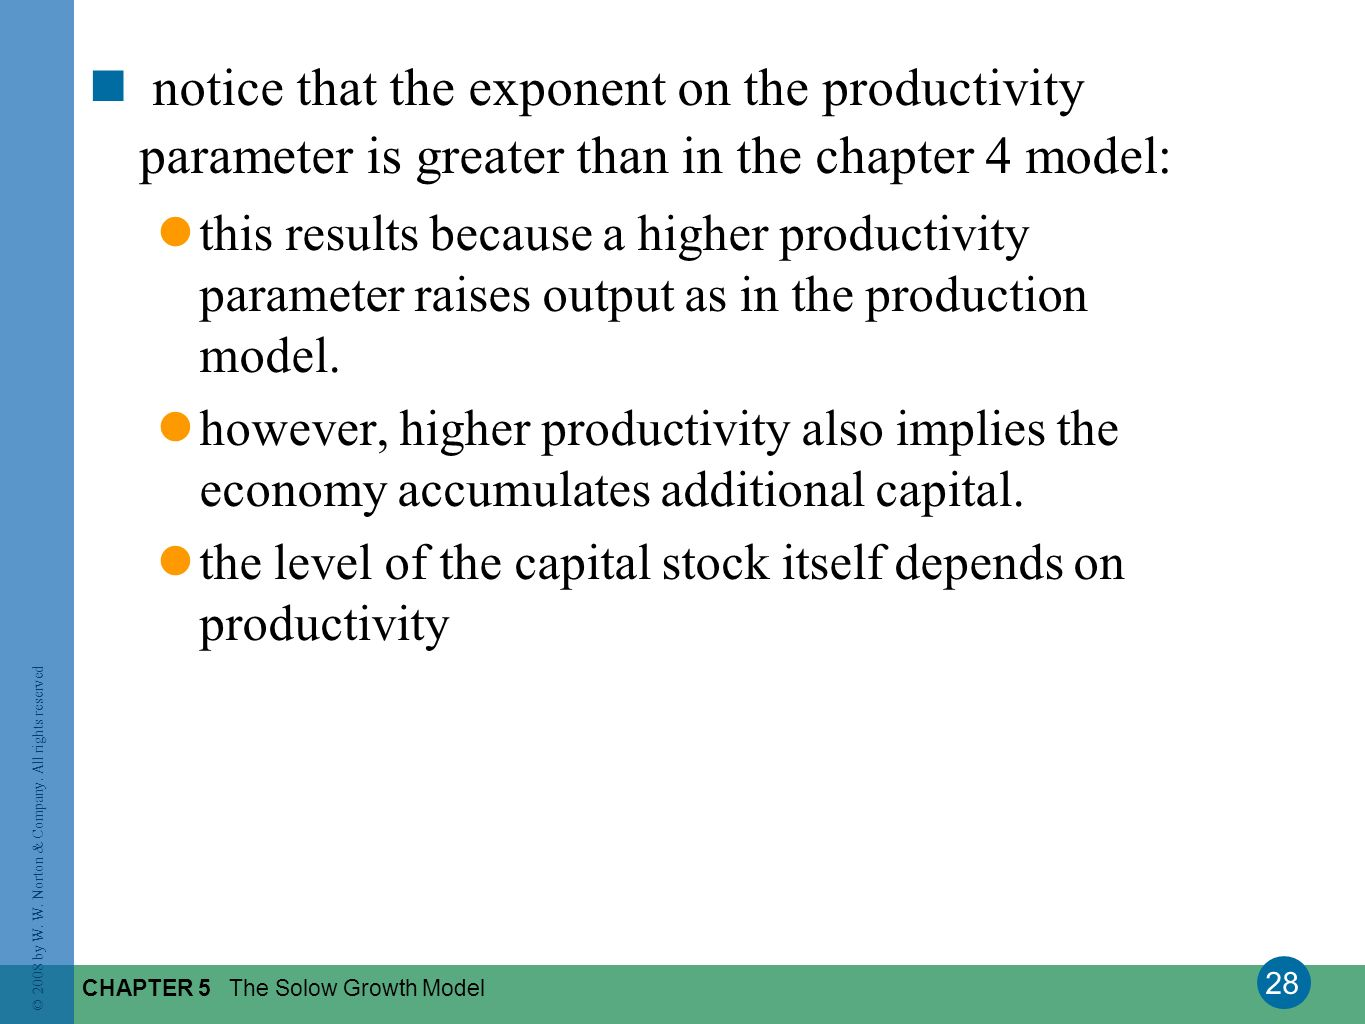 notice that the exponent on the productivity parameter is greater than in the chapter 4 model: